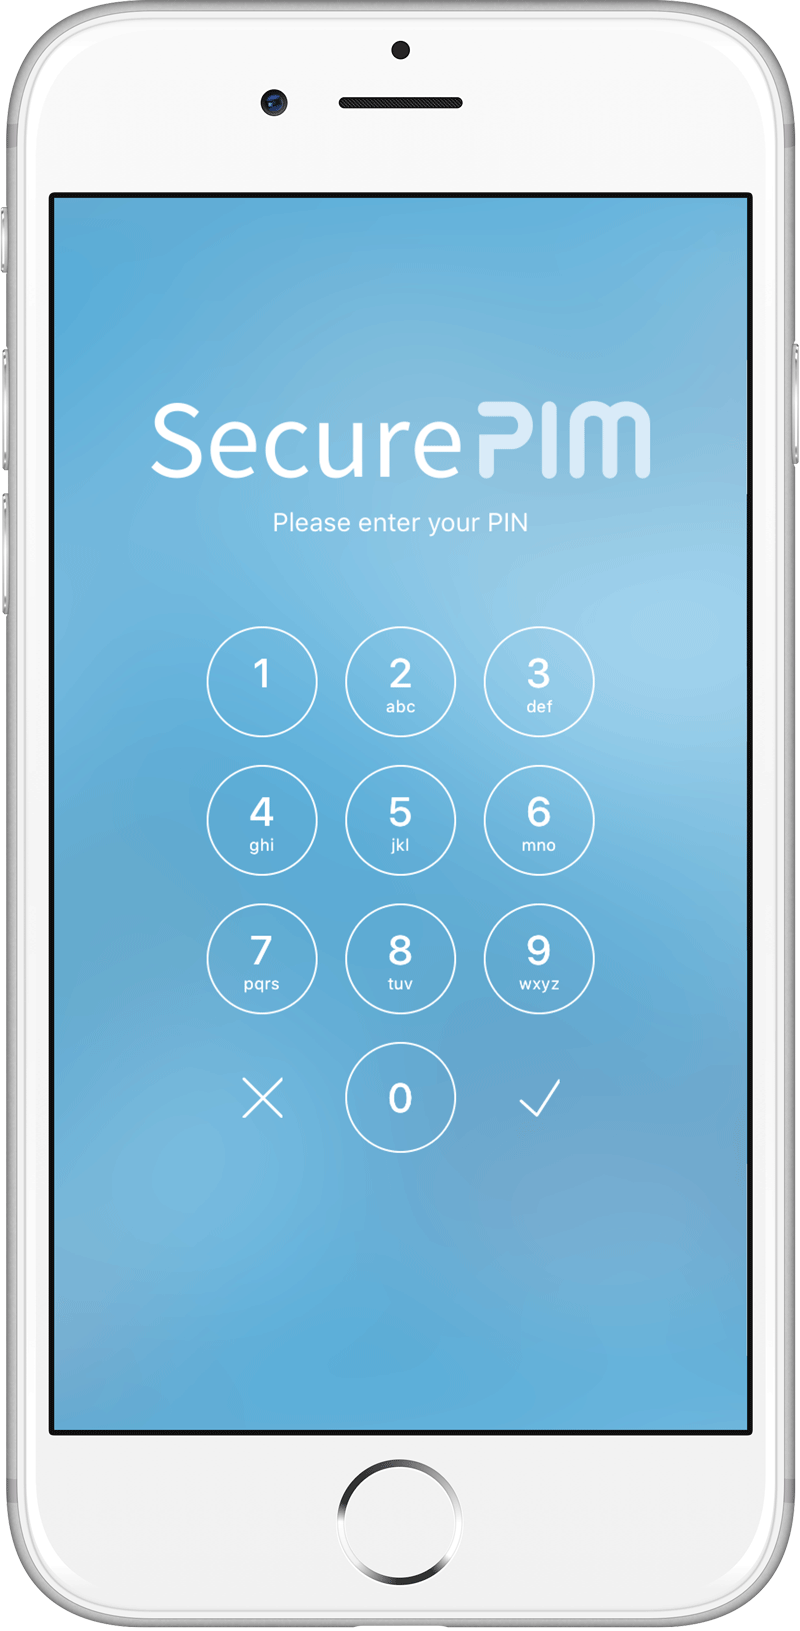 SecurePIM Login Screen on iPhone